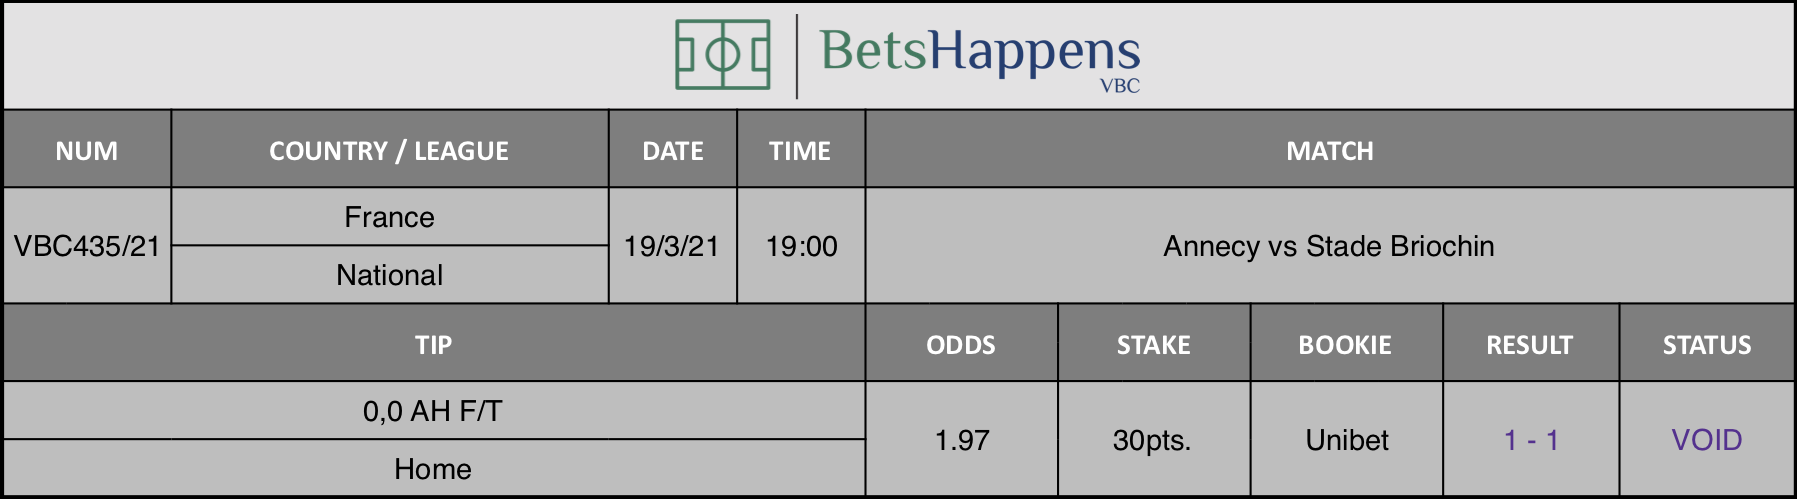 Results of our tip for the Annecy vs Stade Briochin match where 0,0 AH F/T Home is recommended.